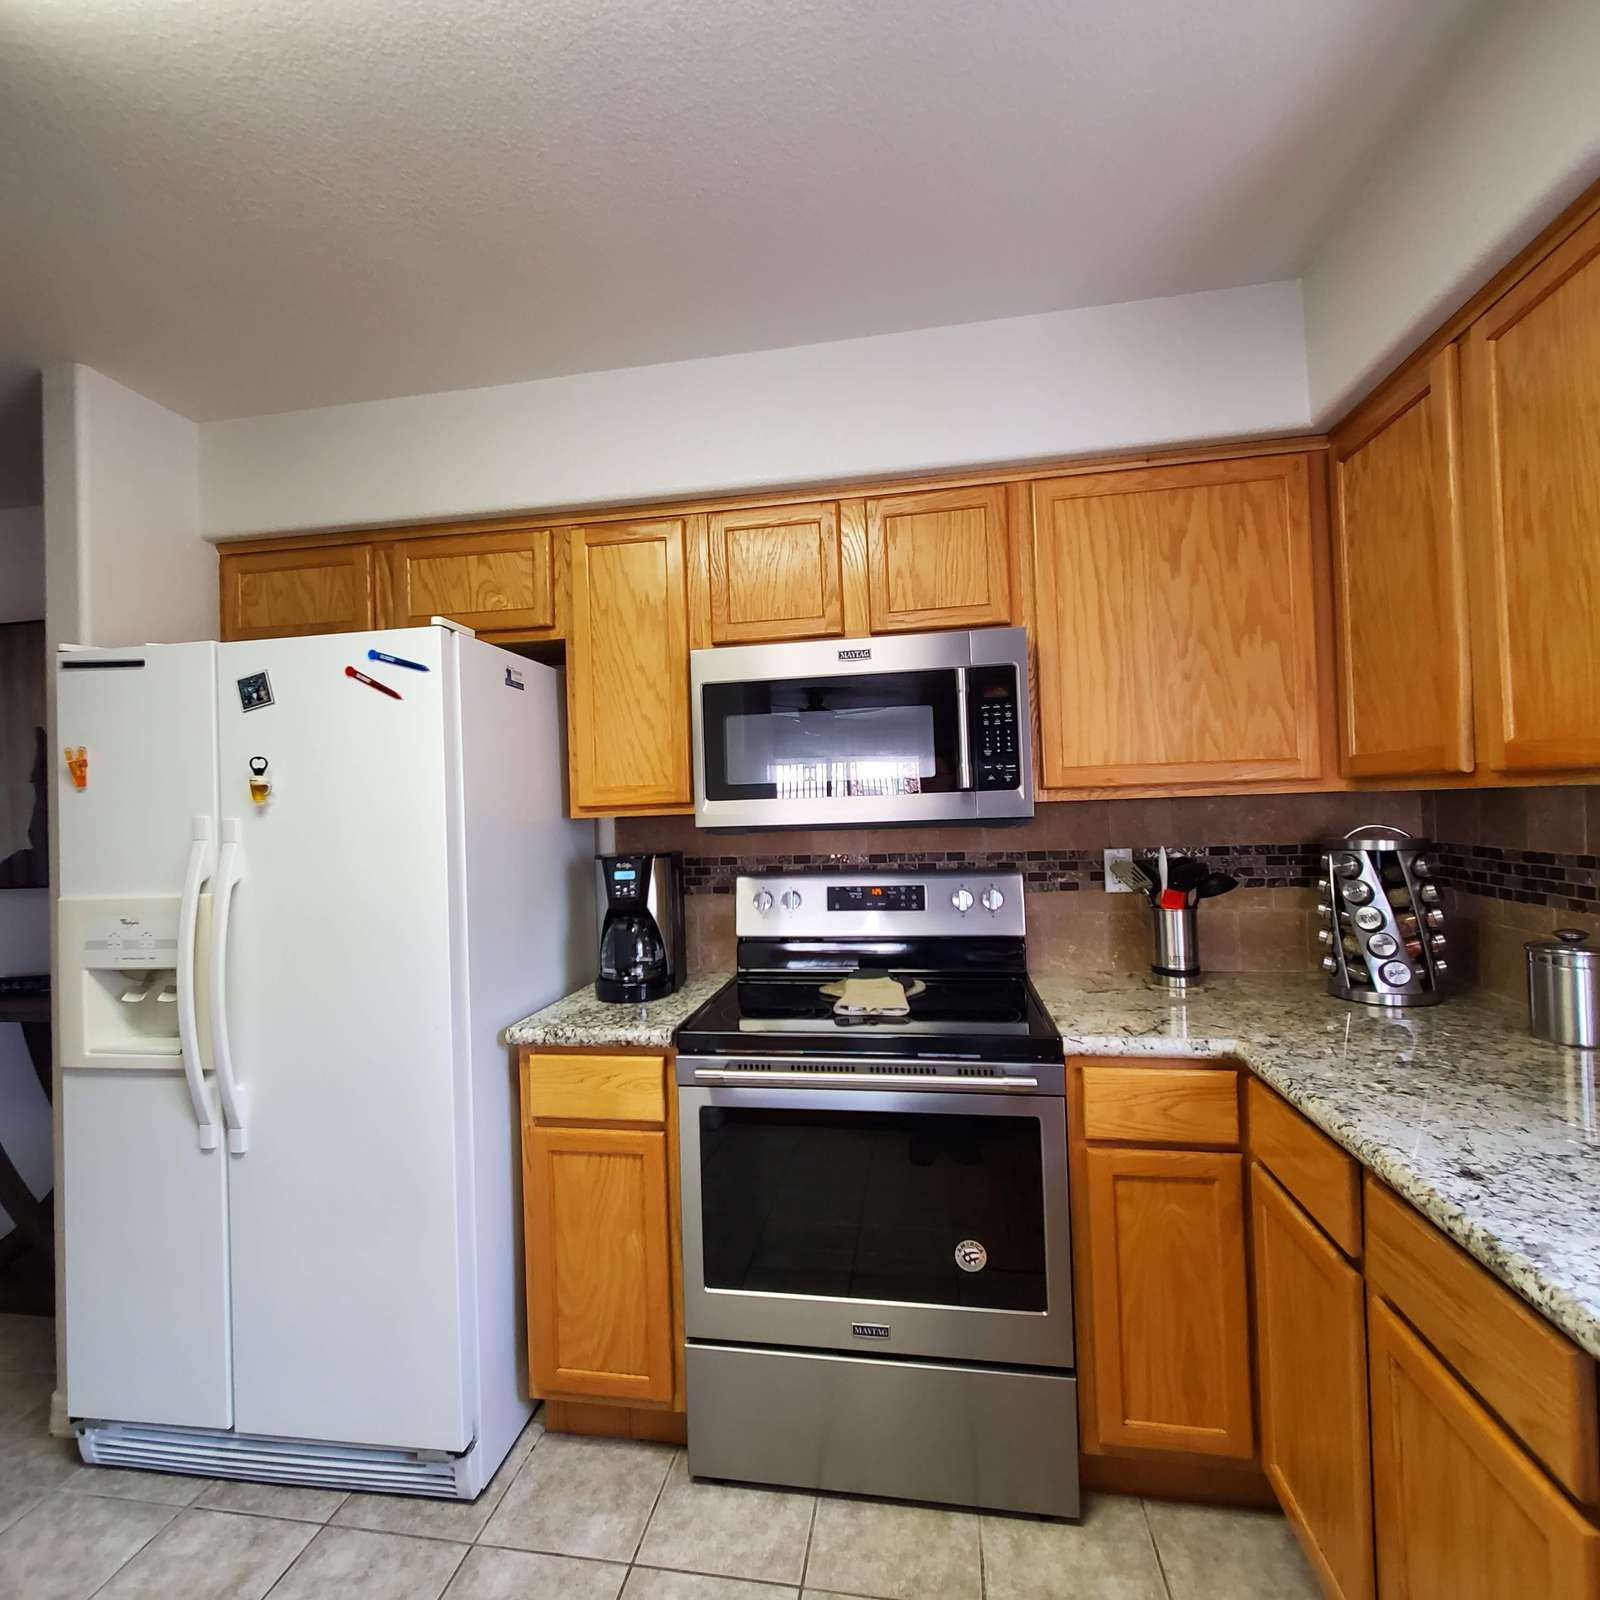 Brand New Stove and Microwave